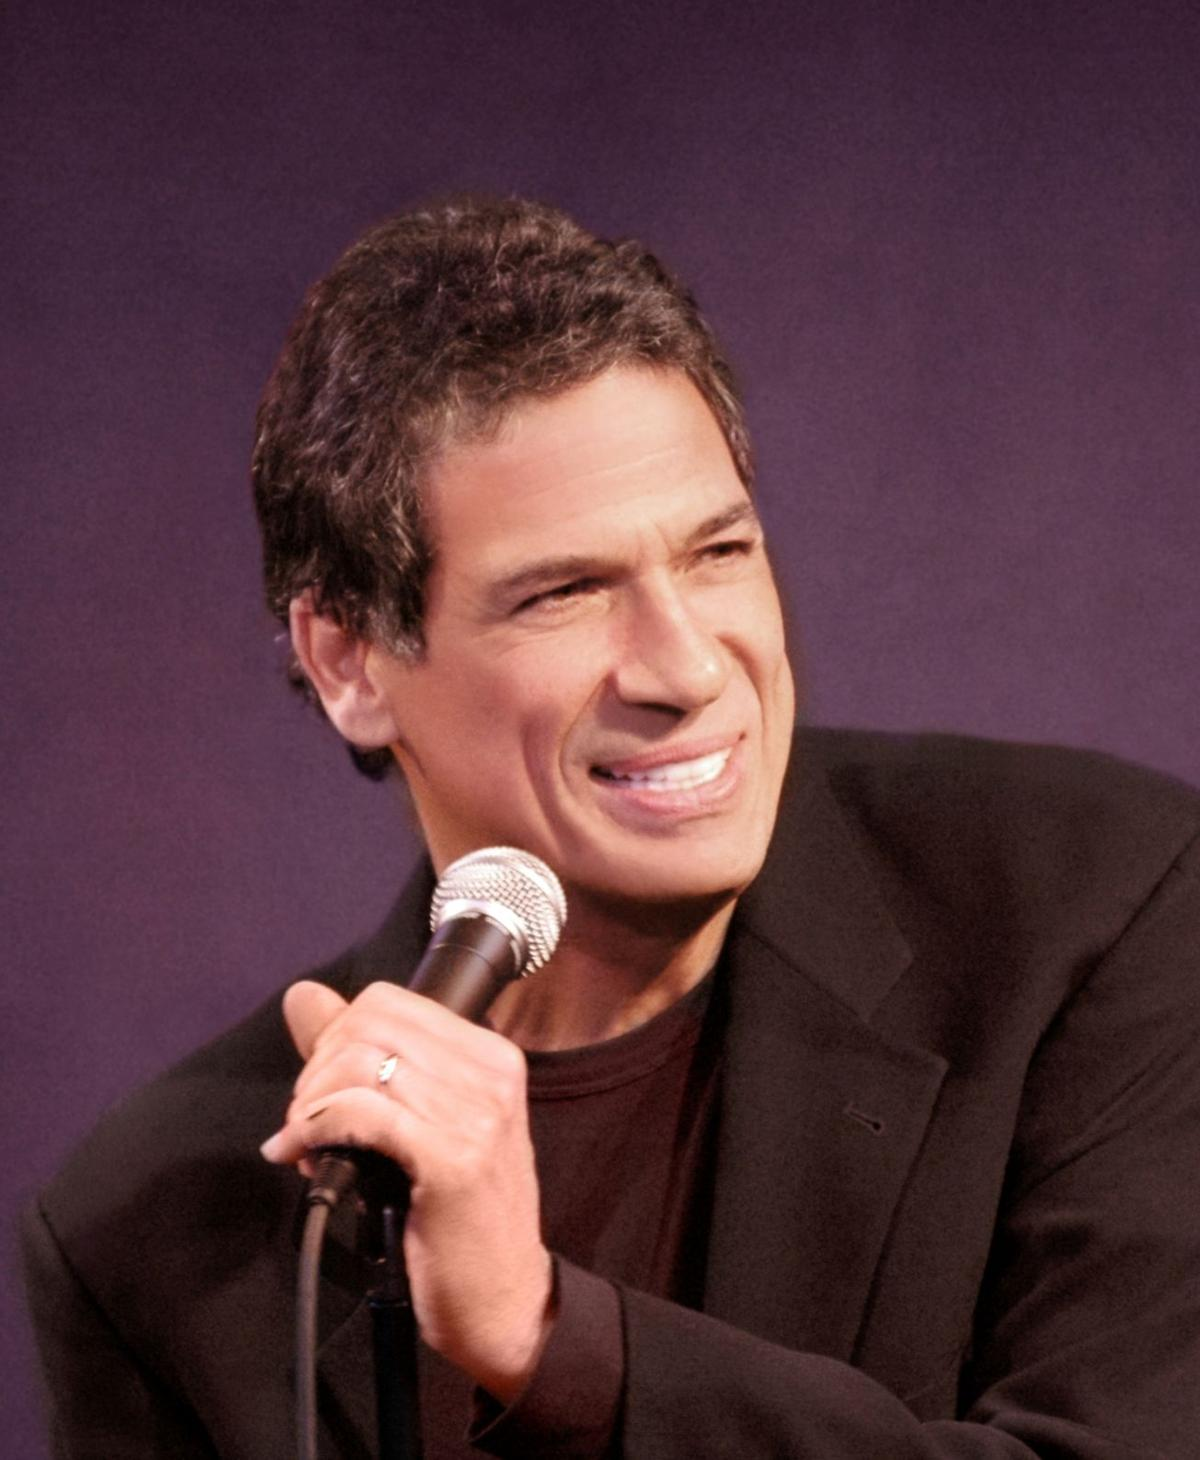 Comedy Cabana welcomes back Bobby Collins June 21-23